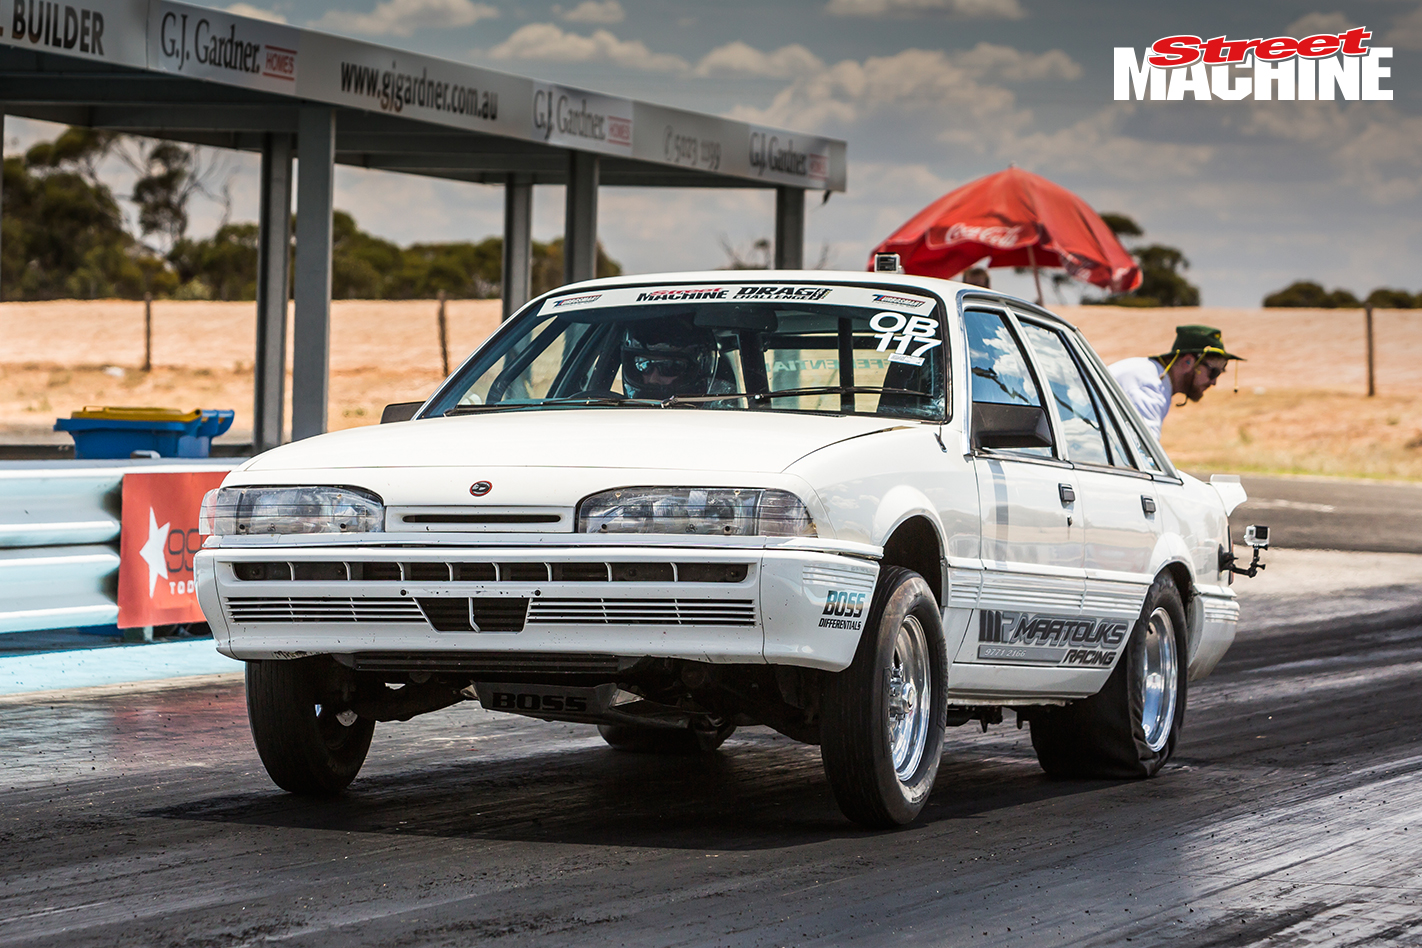 The recipe is by Maatouks, who know a thing or two about these Holden/Nissan  sixes. Management is by Microtech and it spins the rollers to around 800hp.